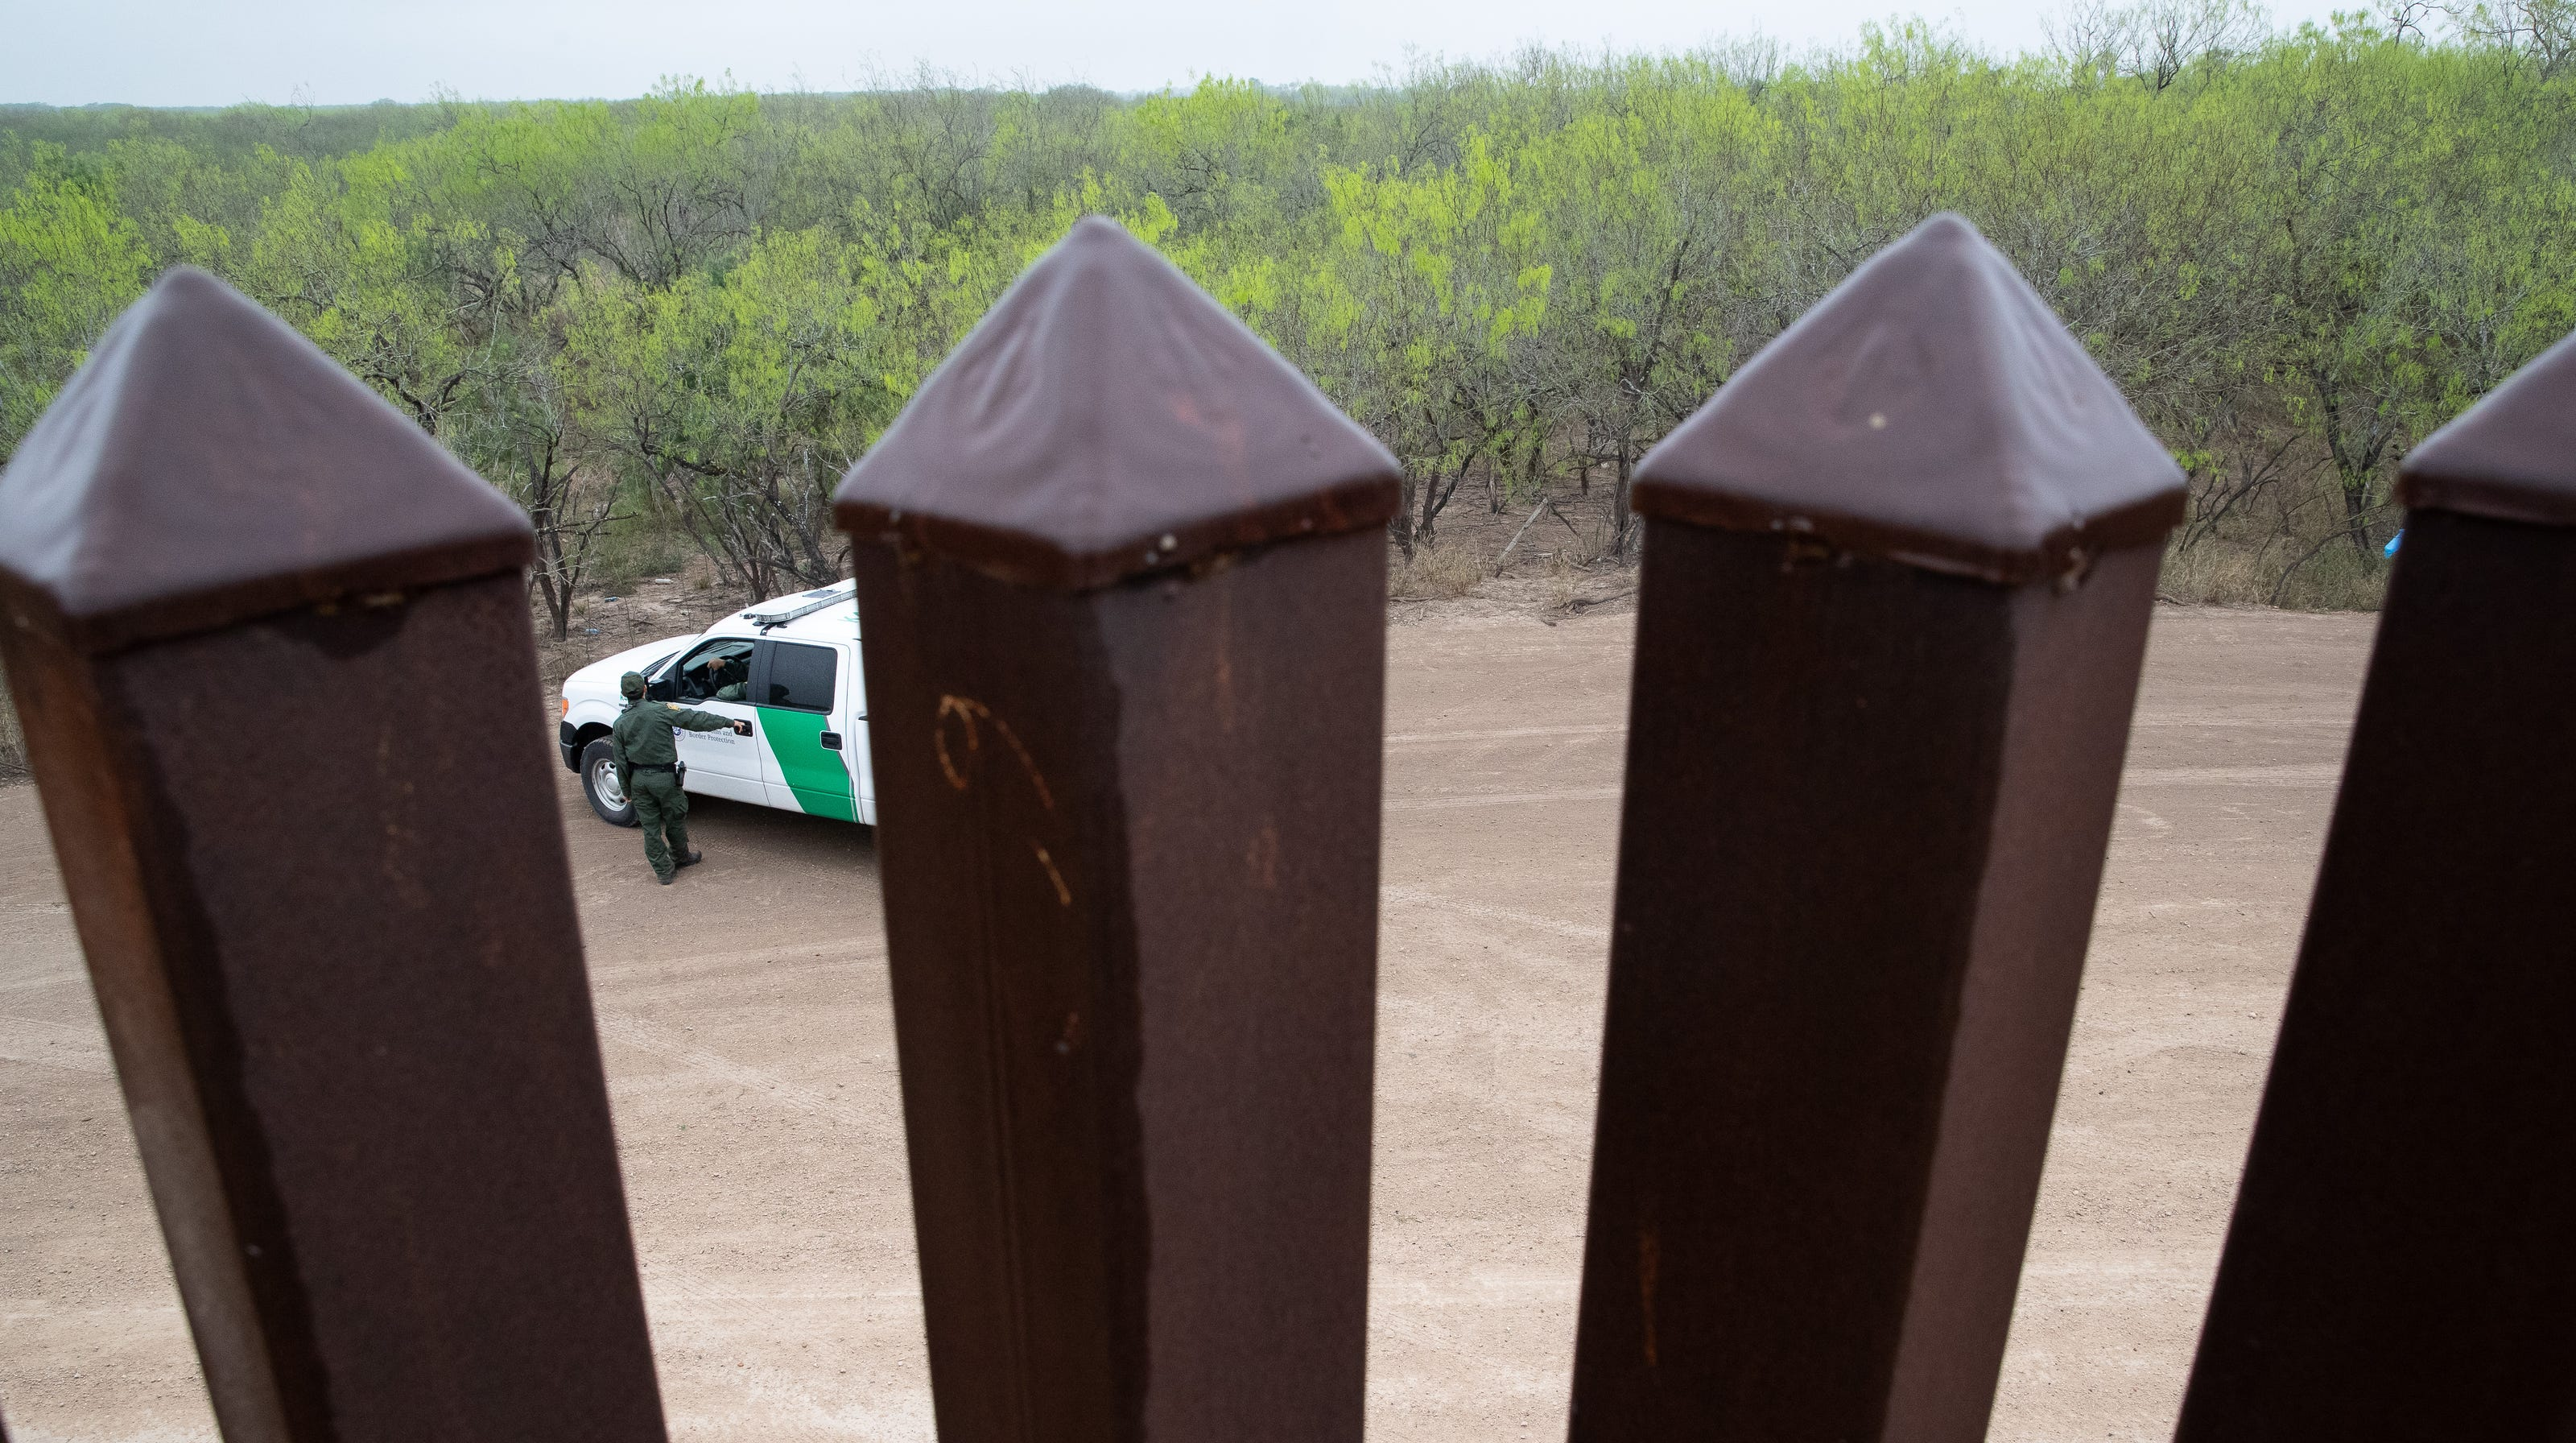 Feds announce $43 million earmarked for three miles of border wall in Texas